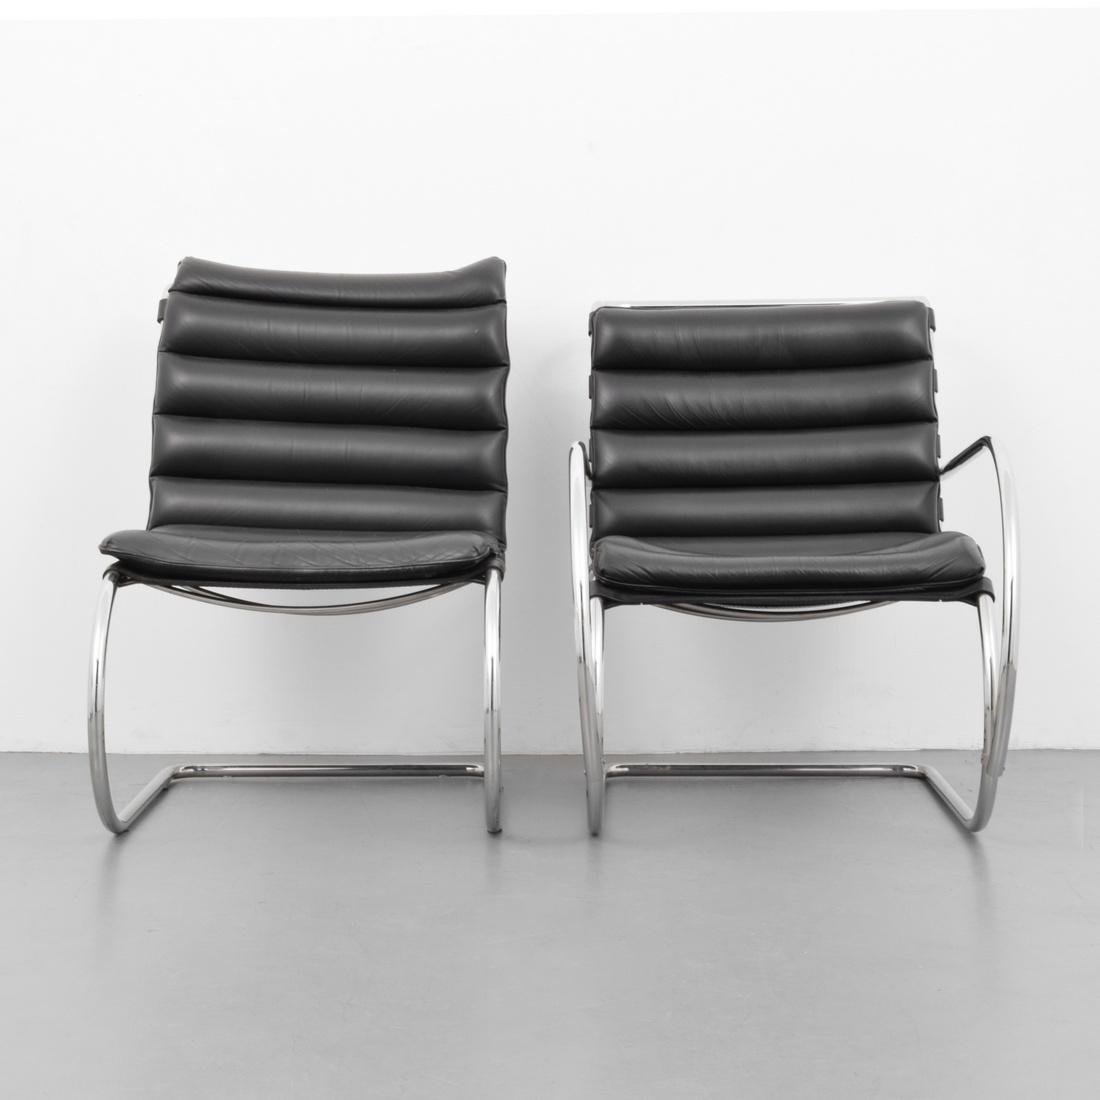 2 Mies Van Der Rohe Cantilever Chairs - 2